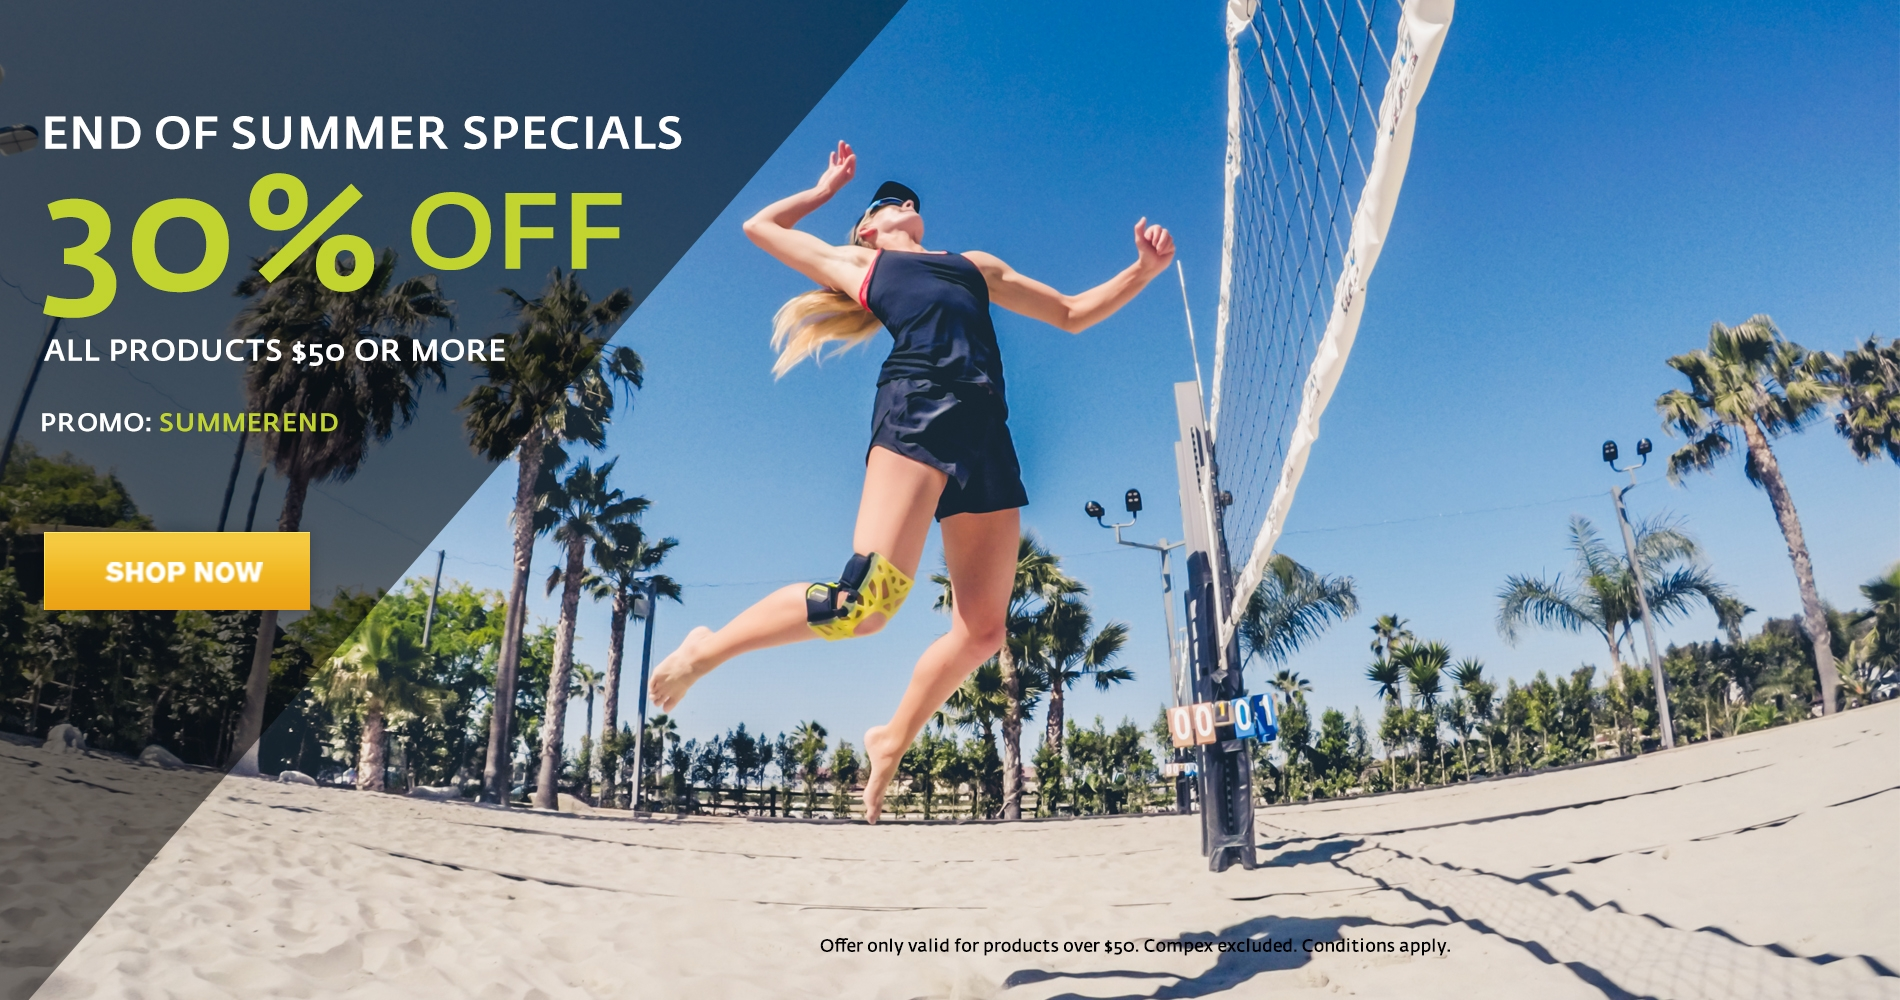 20% OFF Injury prevention